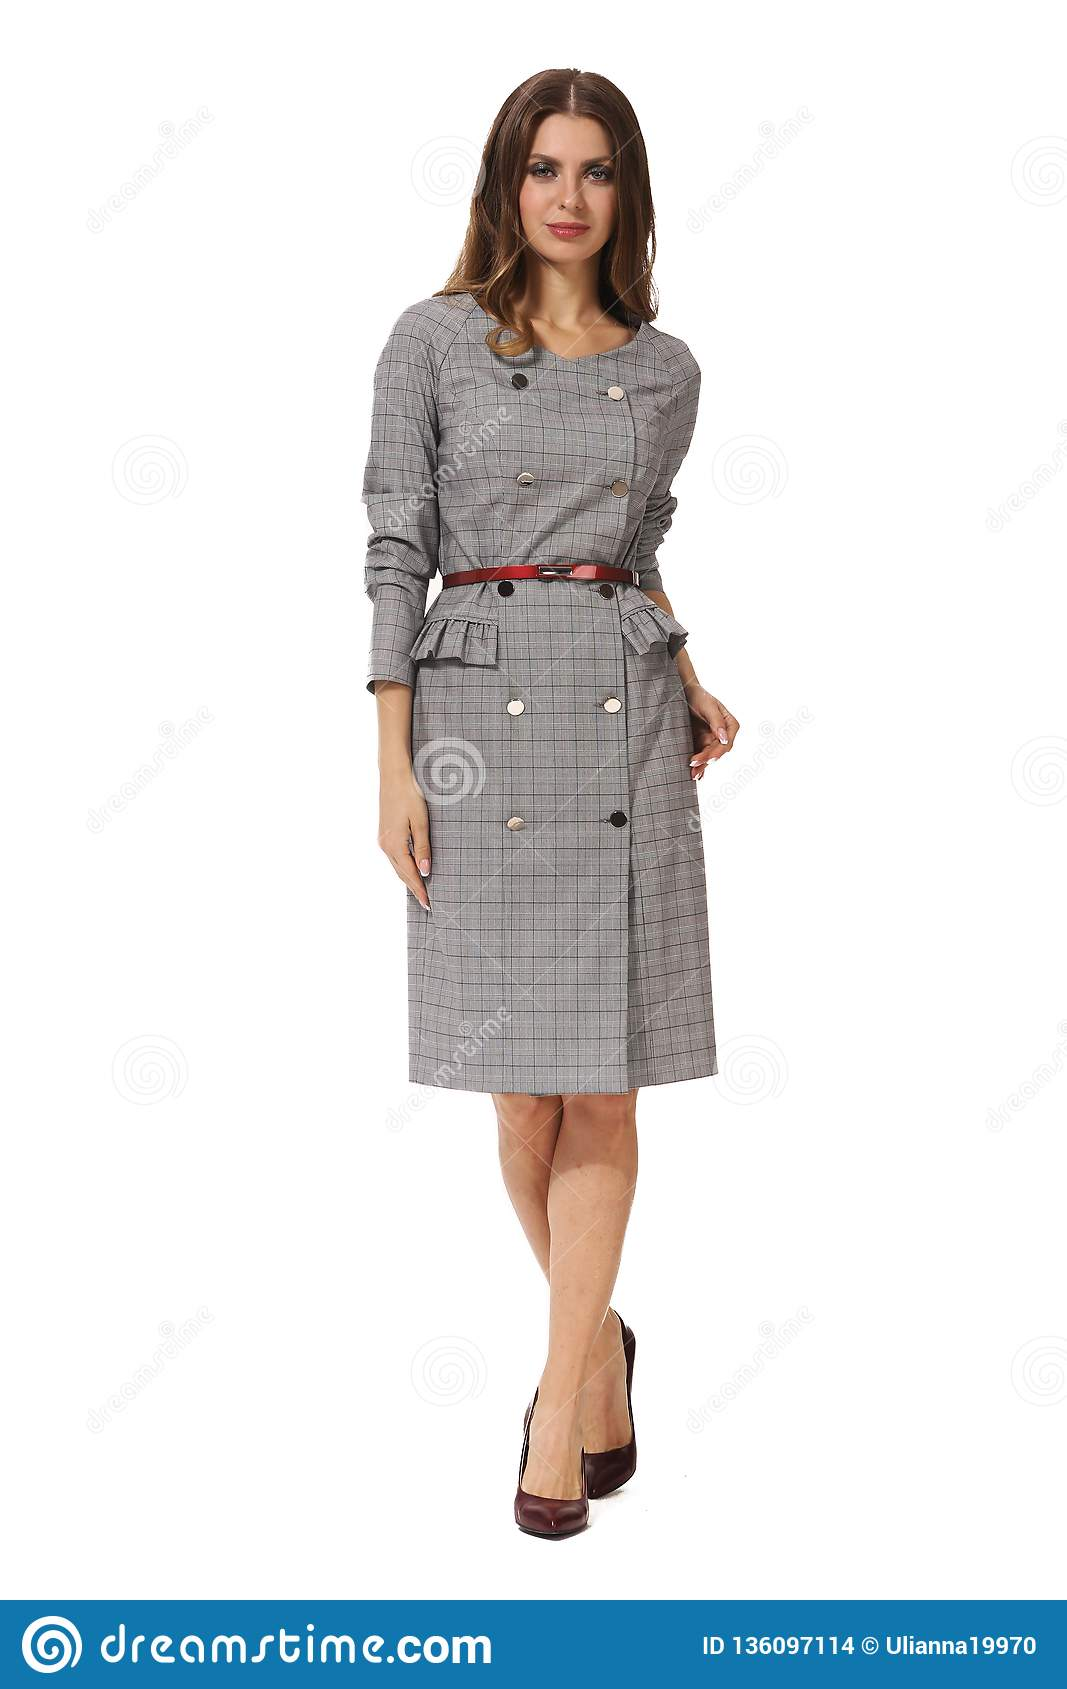 787f8ae73a3 Business Woman Executive Posing In Casual Clothes Stock Photo ...